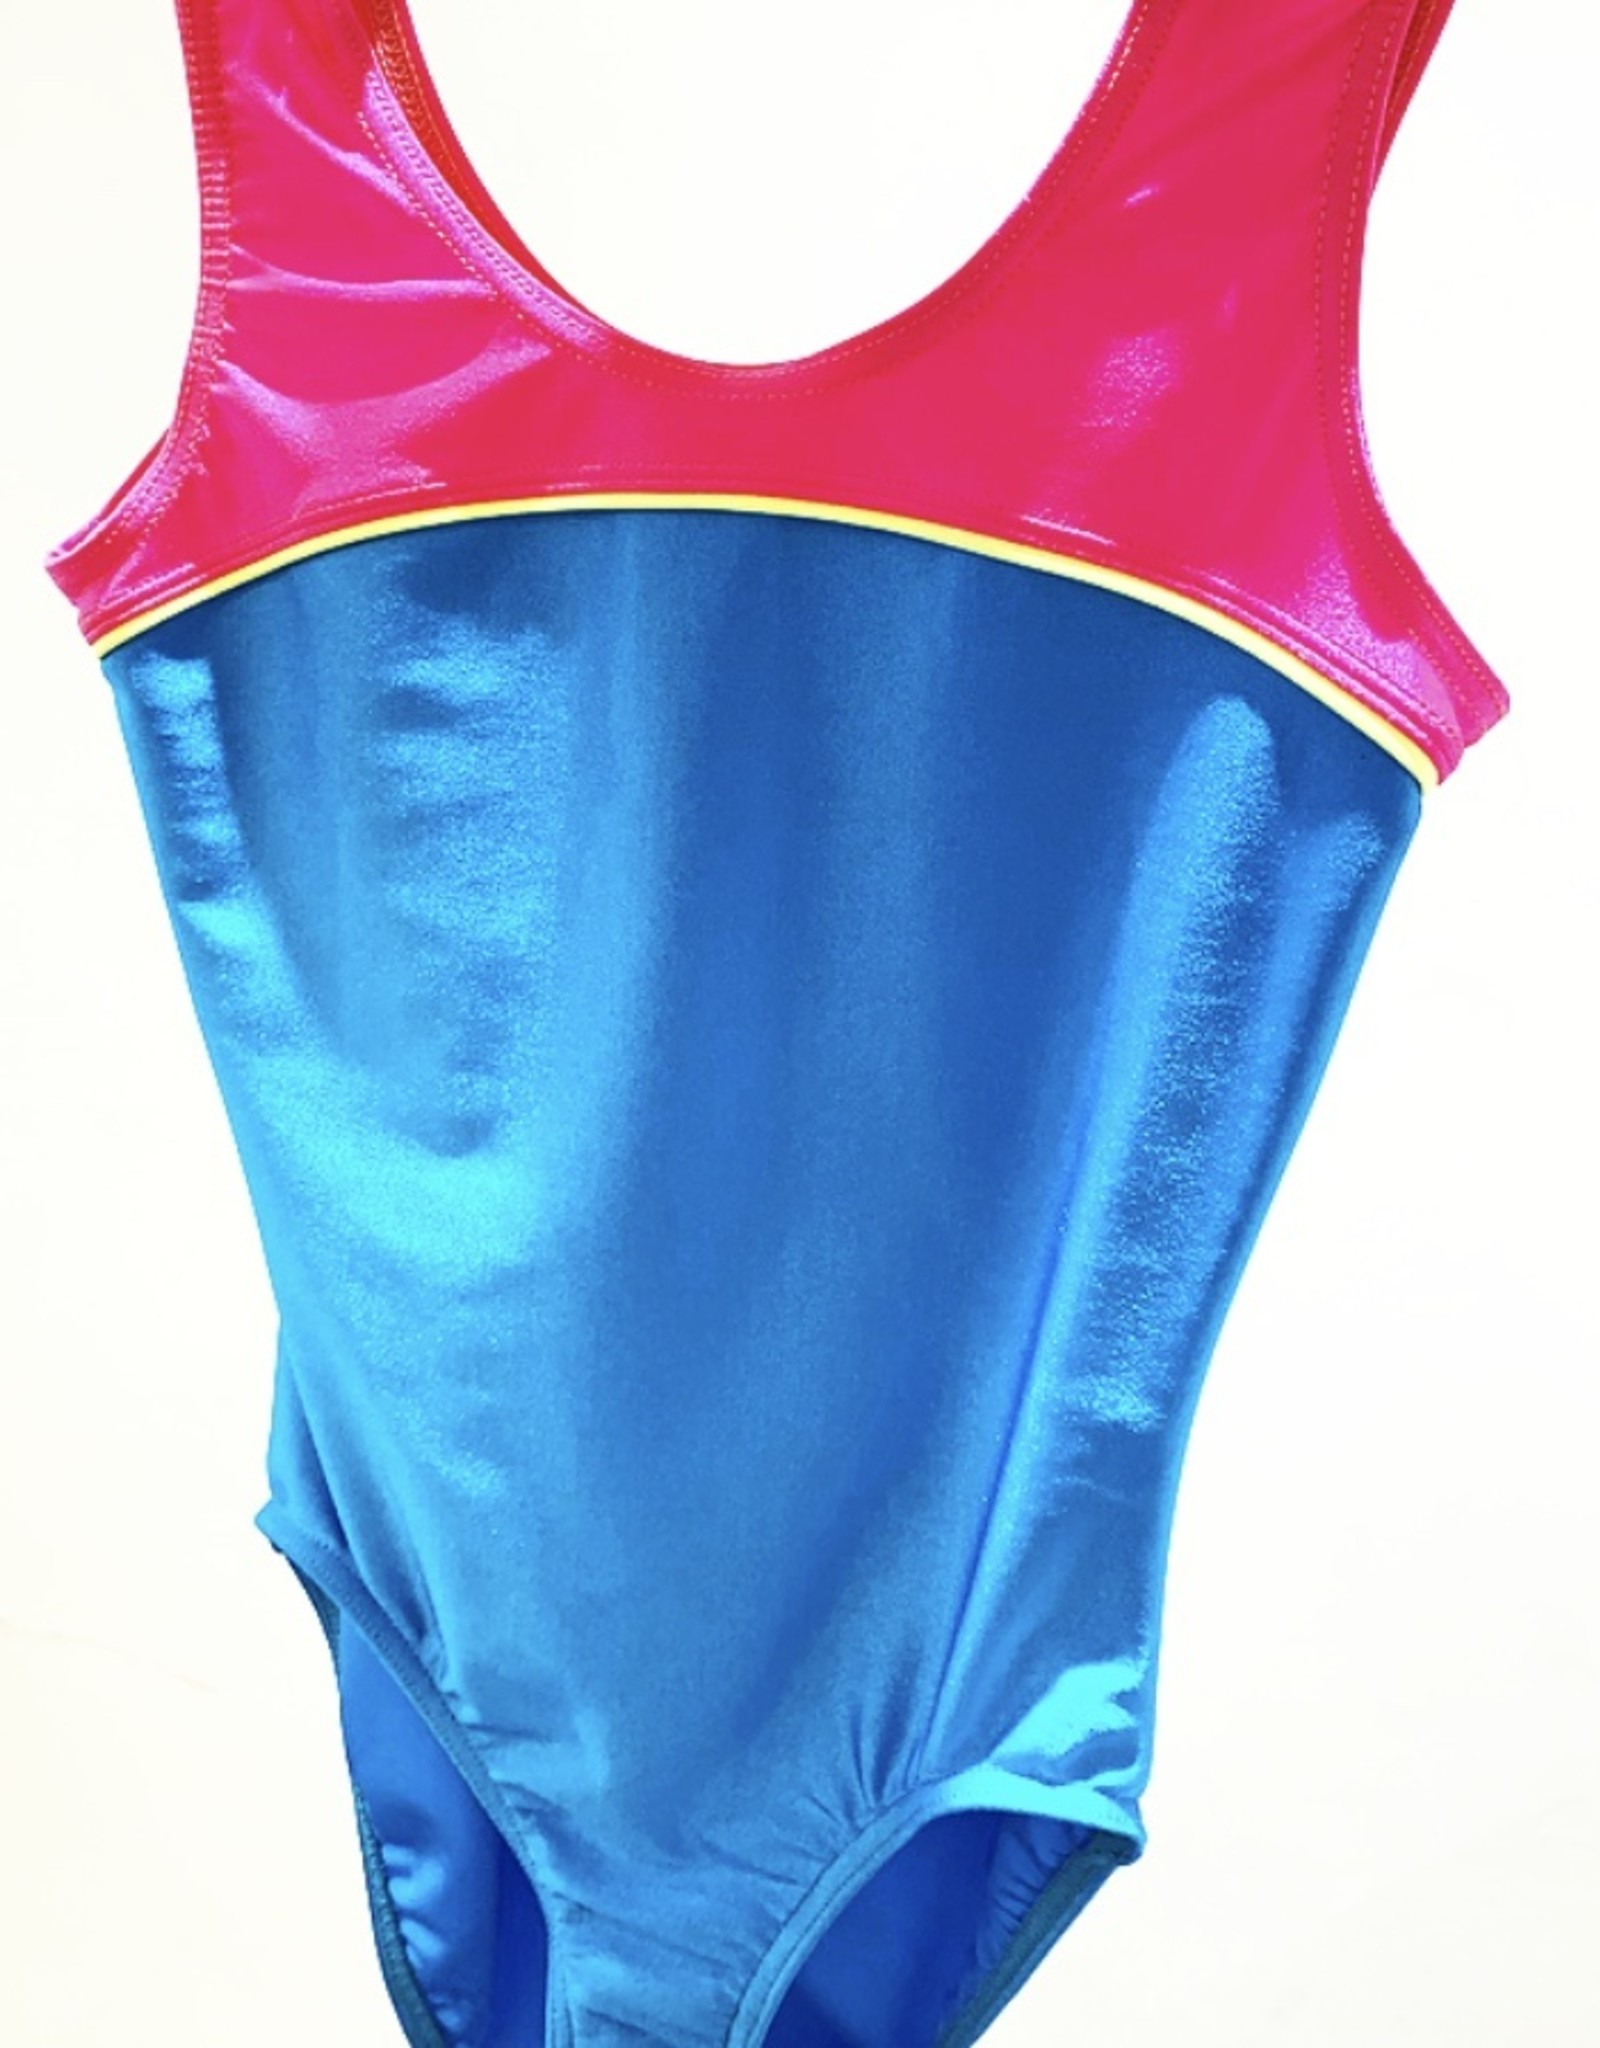 MONDOR TANK GYM LEOTARD (7835)